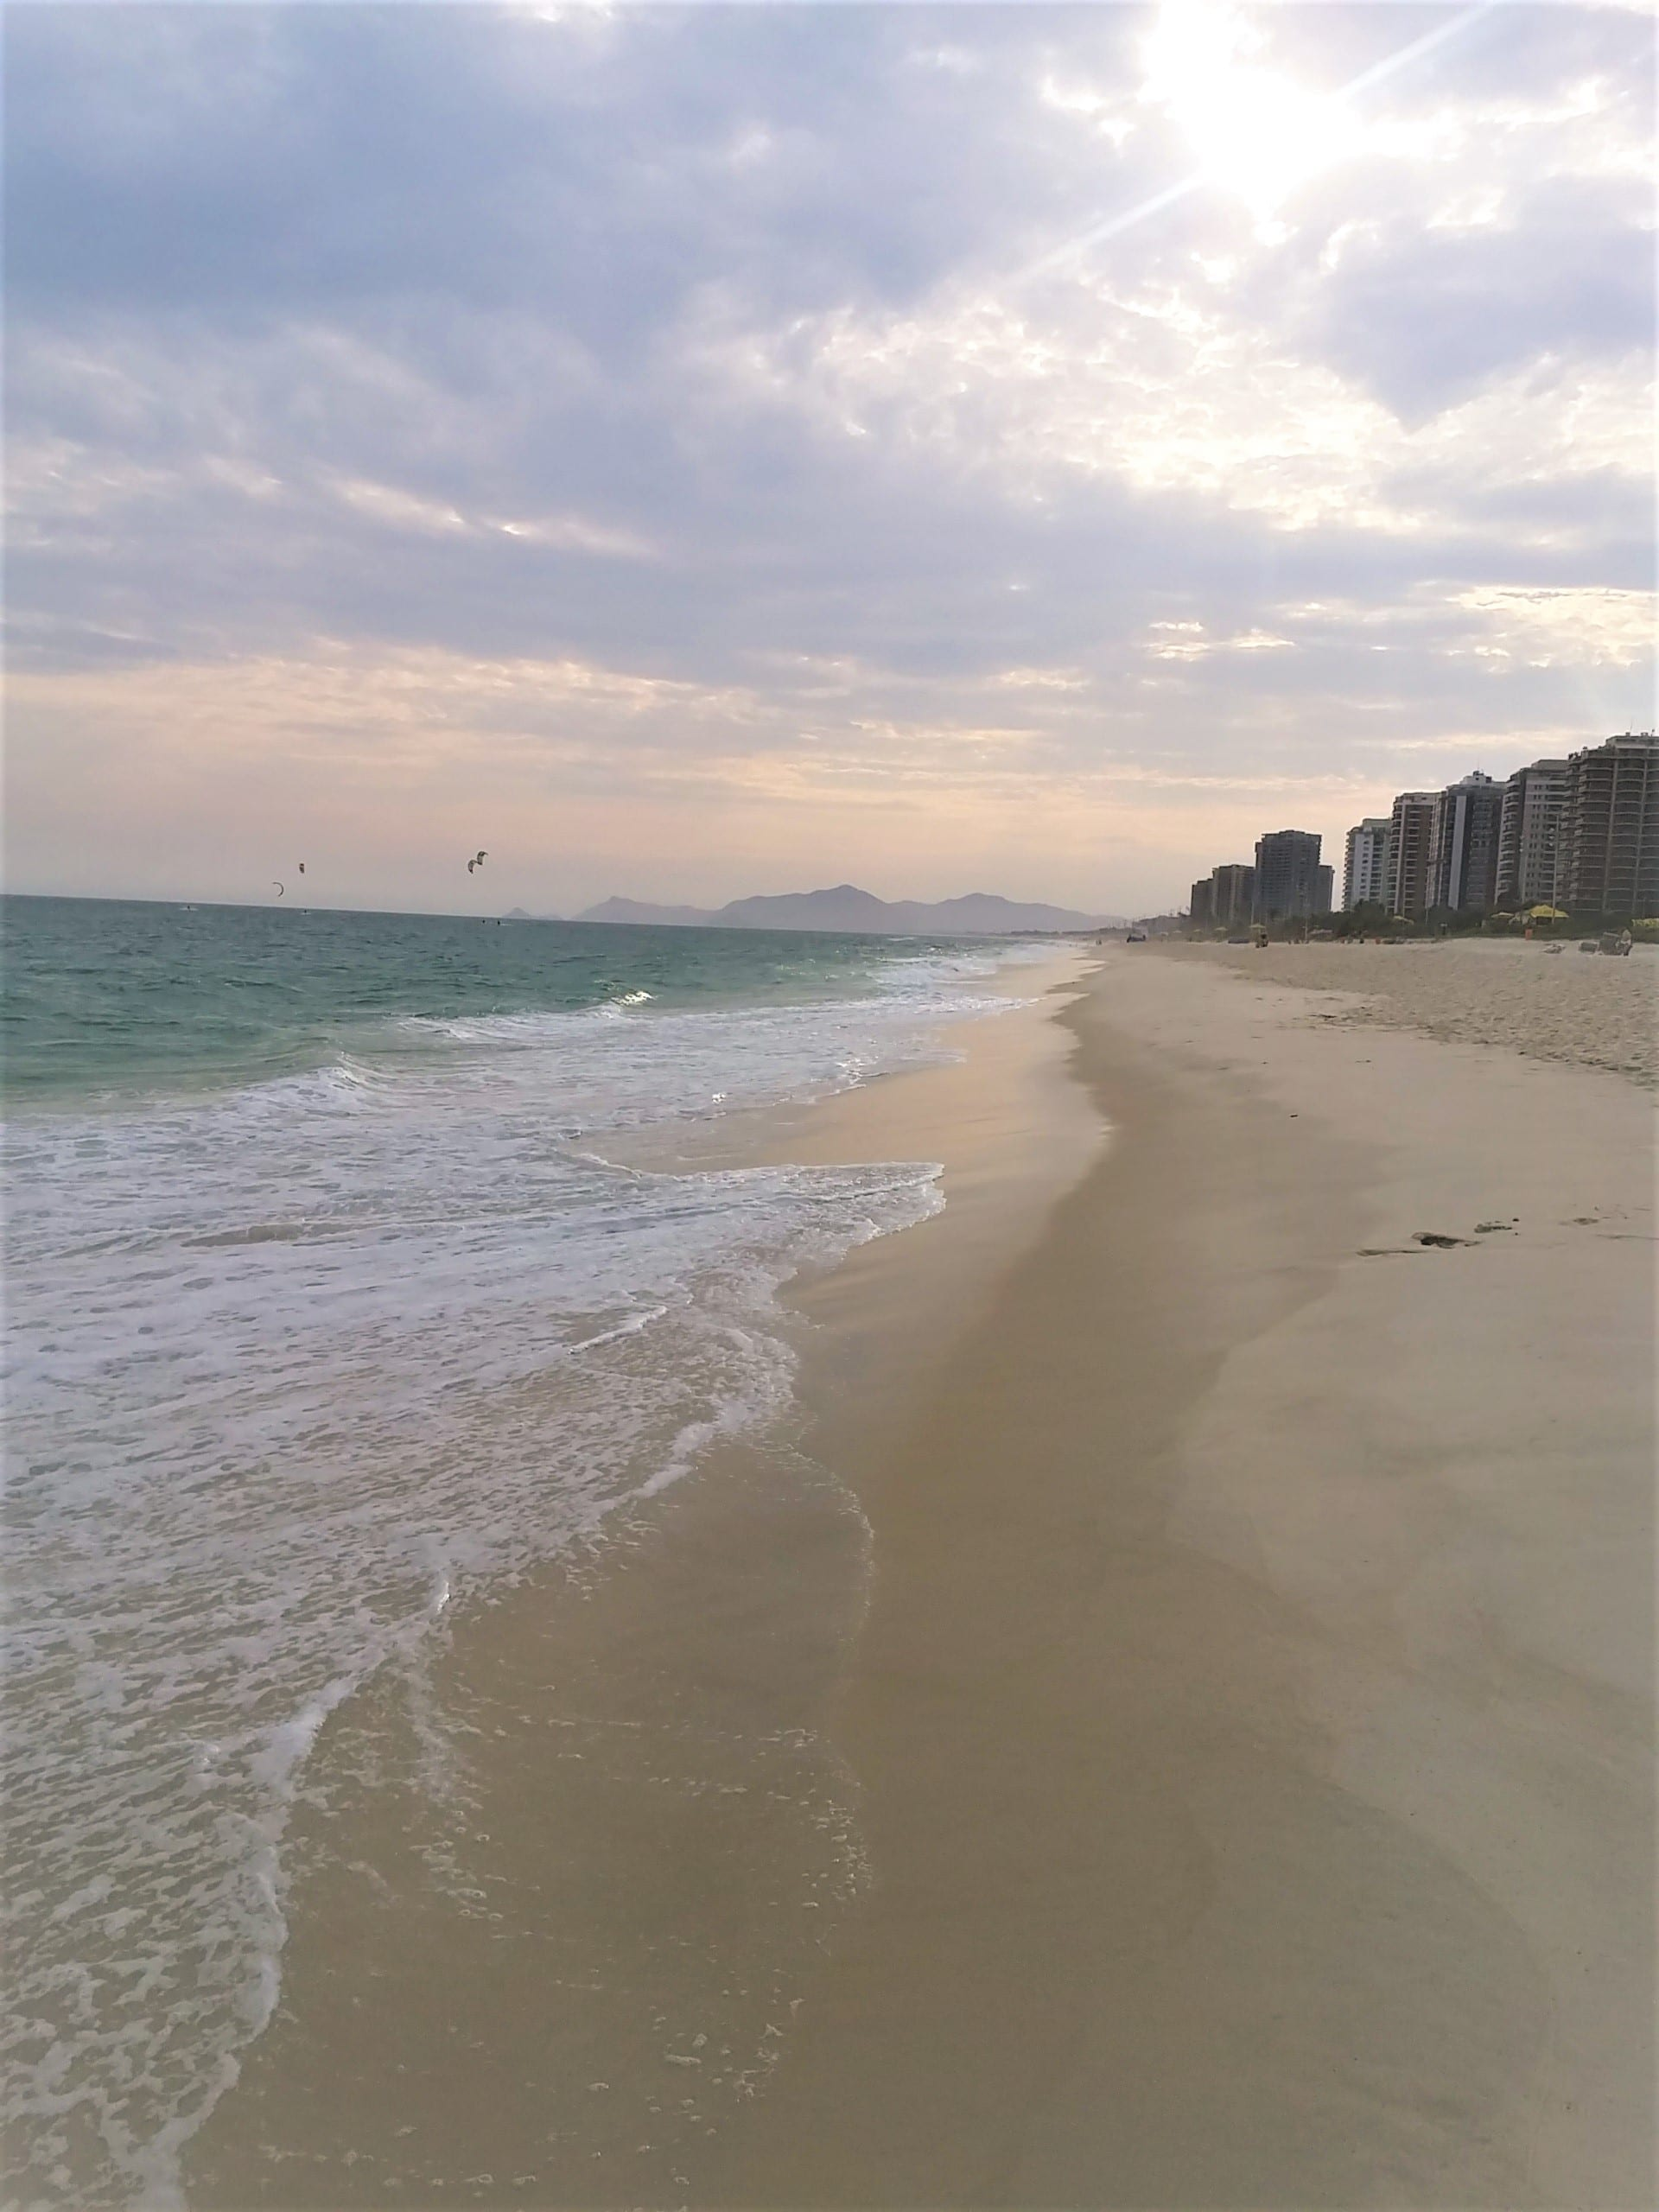 Barra da Tijuca is famous for its long beach